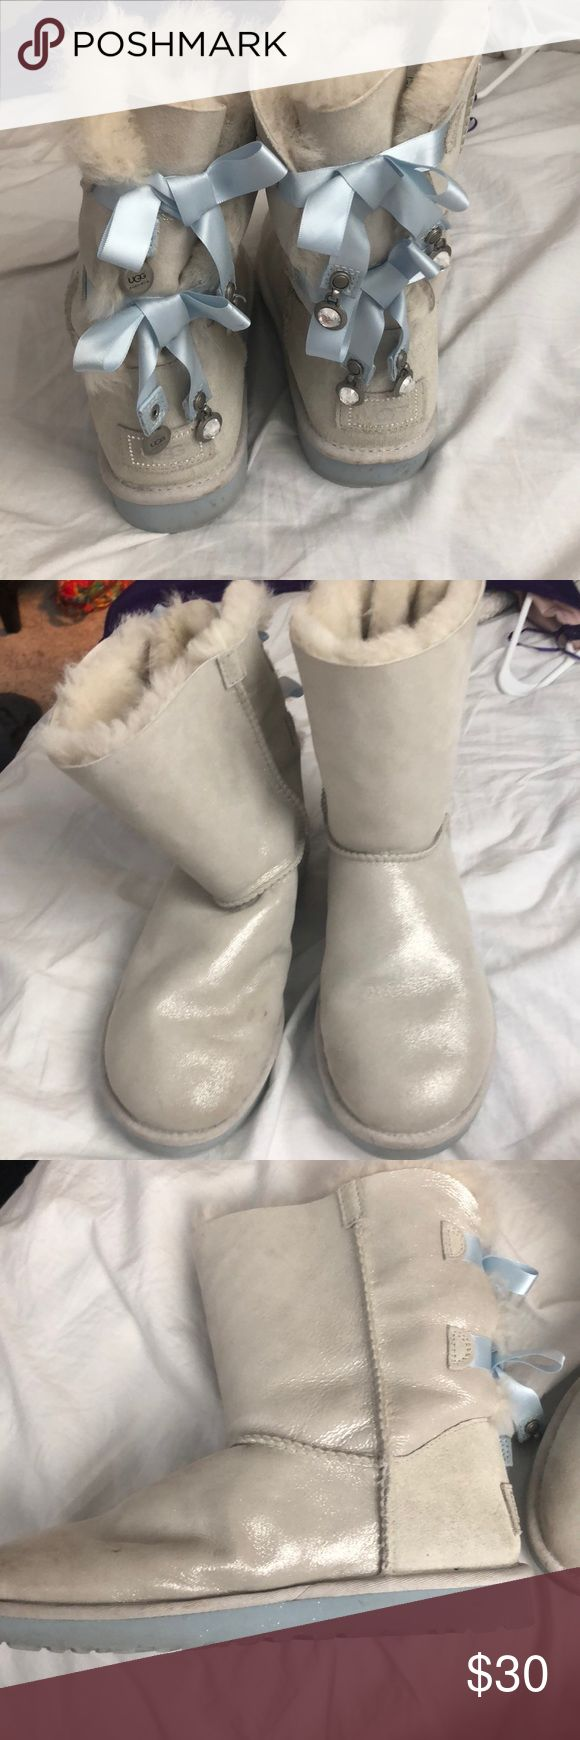 White Ugg boots Iridescent white Ugg boots. Limited Edition, worn a couple time. Slightly dirty but not noticeable. Blue ribbon back with jewels on ends. Bedazzled Ugg logo. One crystal missing on ribbon. UGG Shoes Winter & Rain Boots